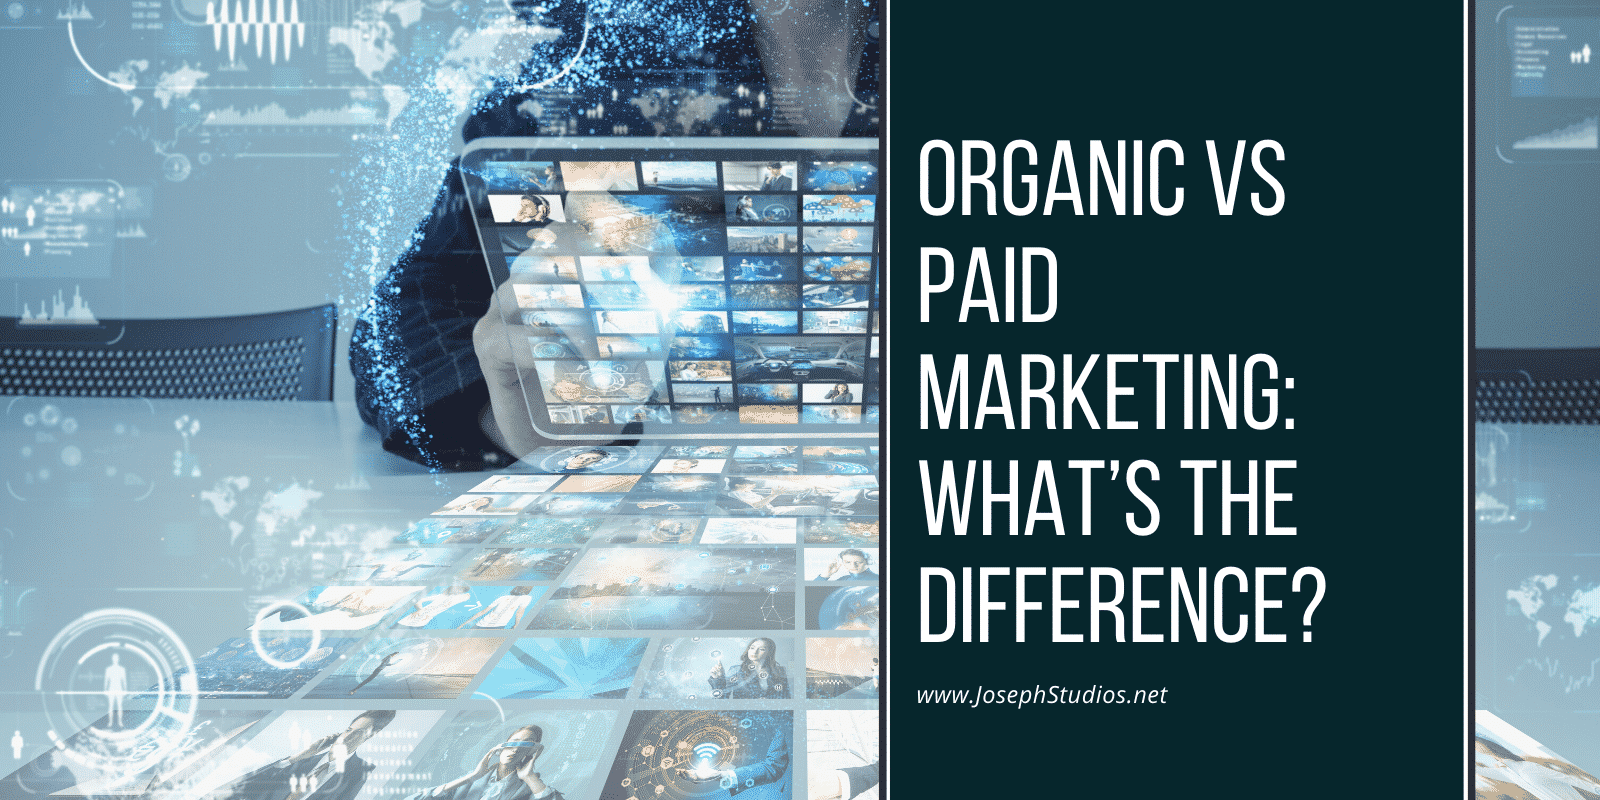 Organic vs. Paid Marketing: What's the Difference